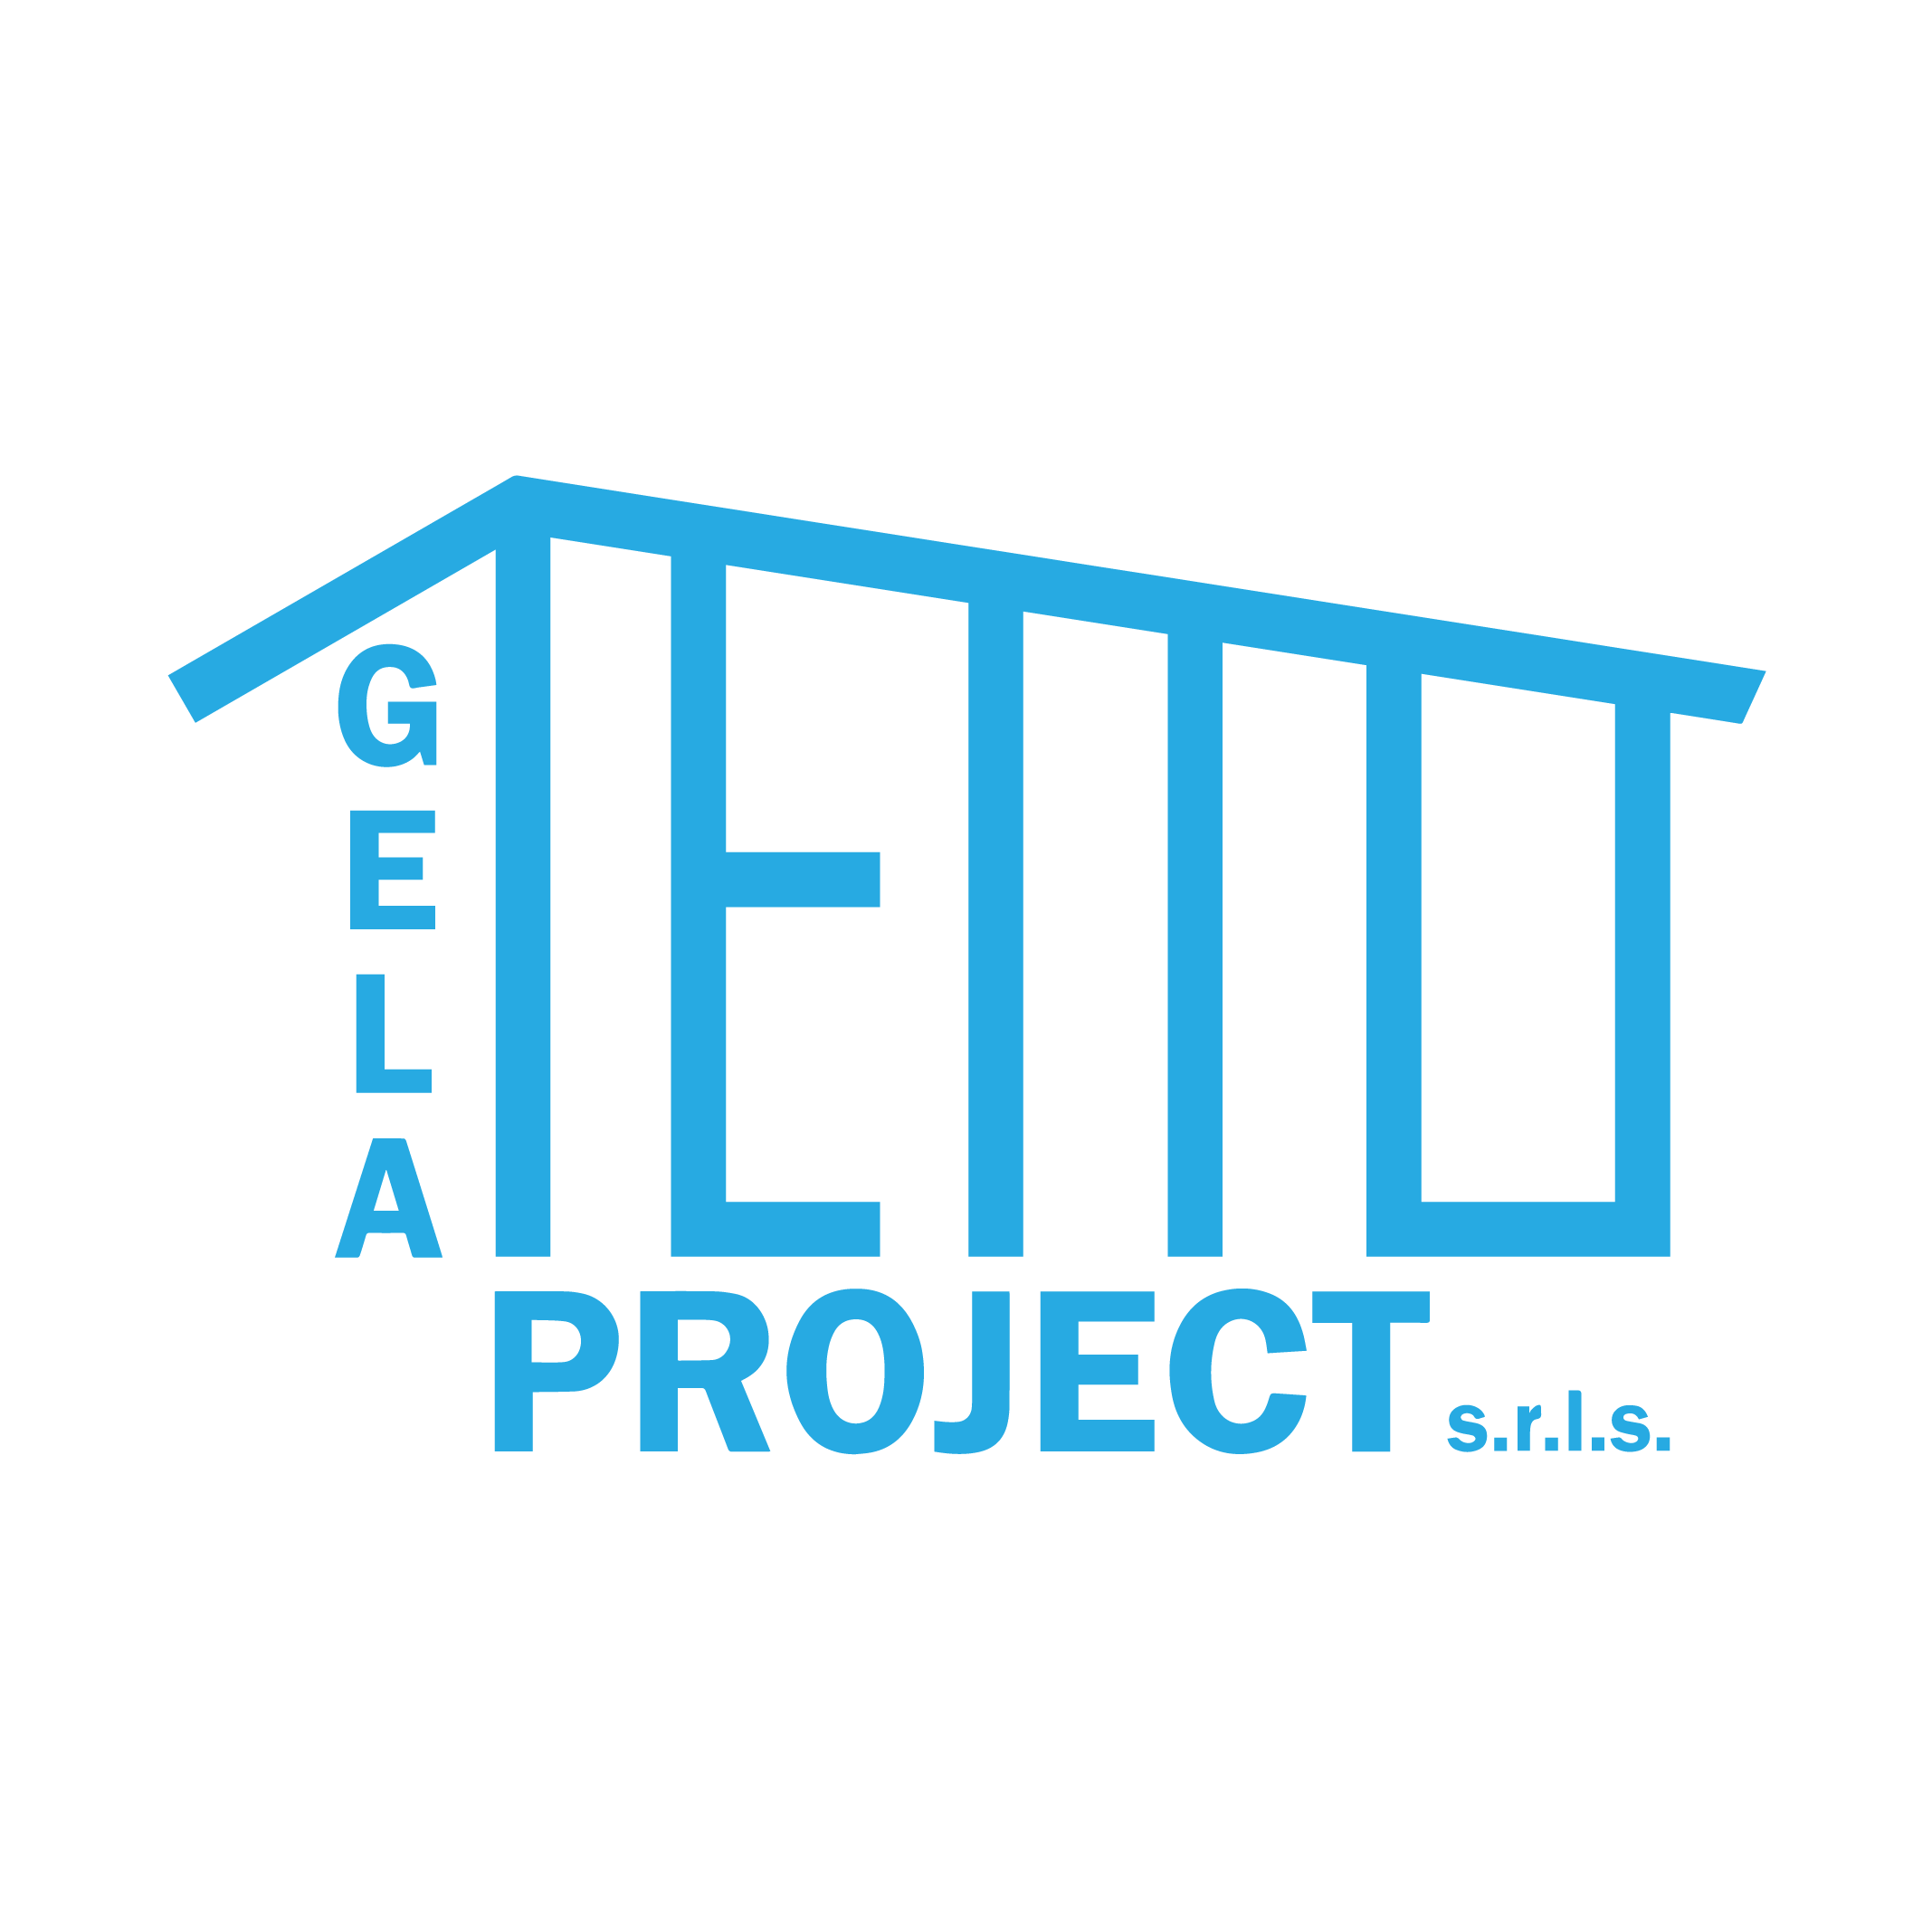 Tetto Project